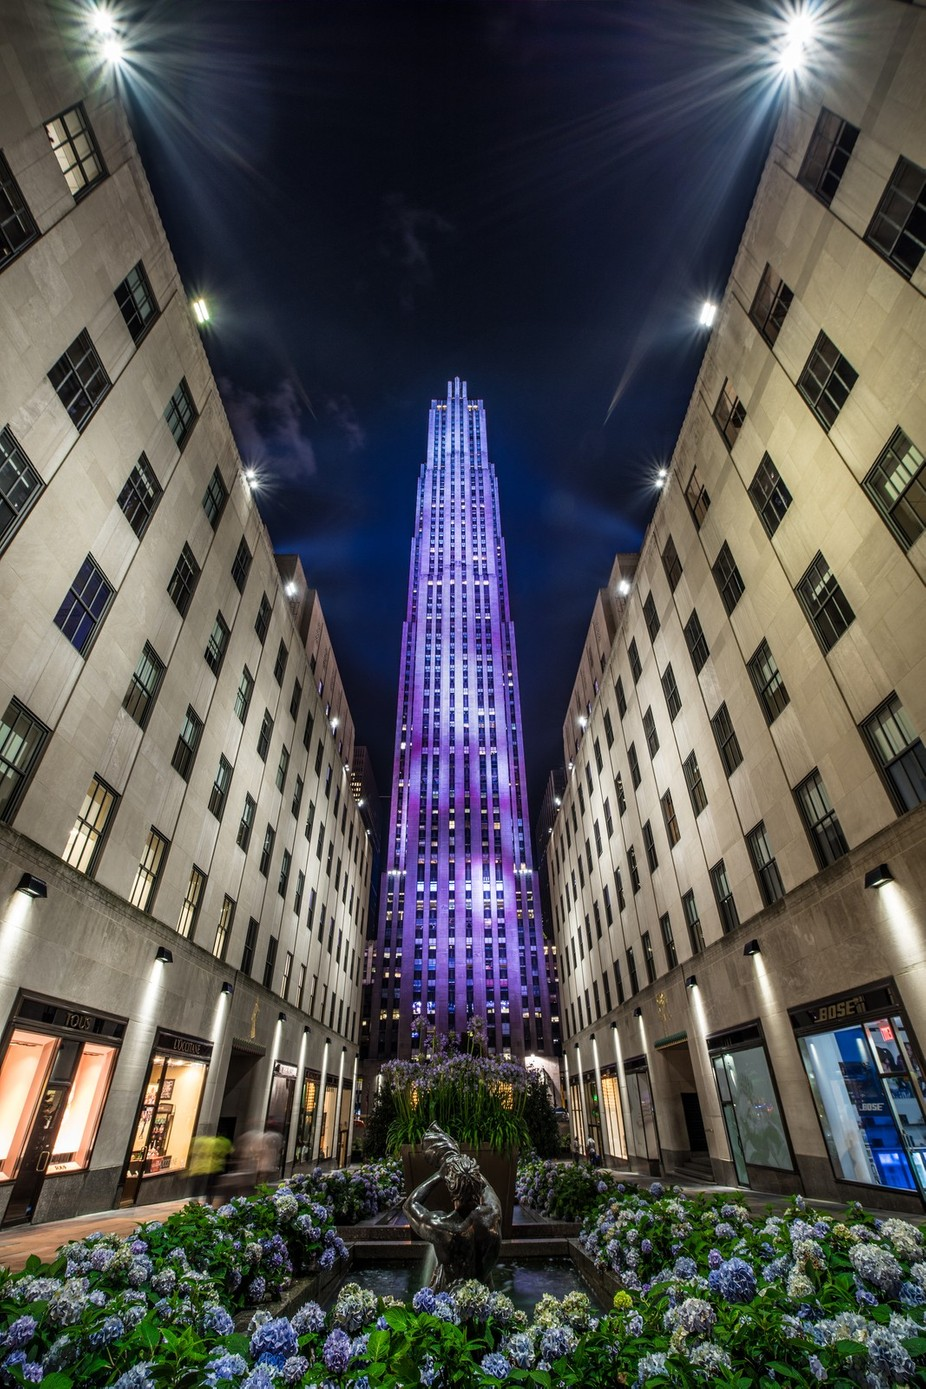 Rockefeller Center, New York, New York by larrymarshall - New York Photo Contest